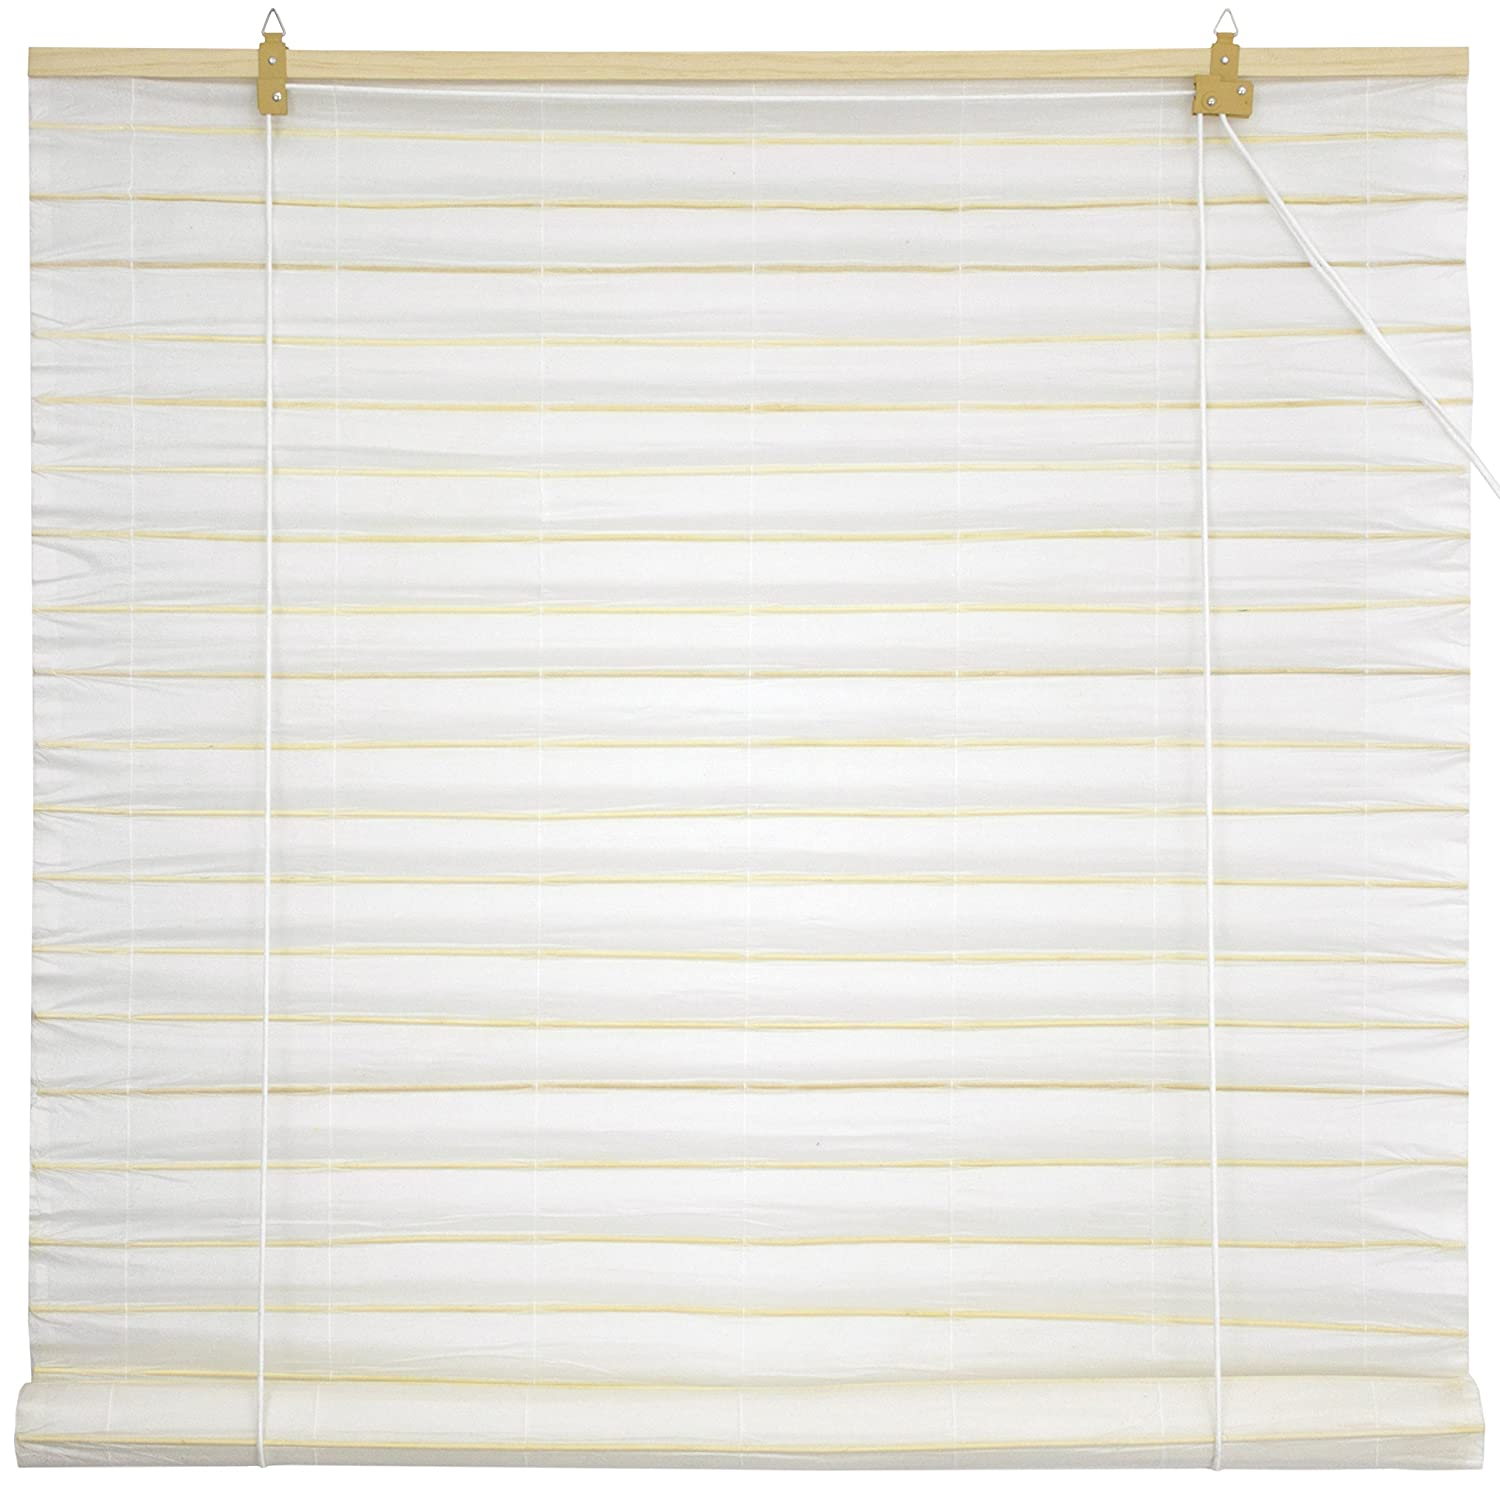 White Roll Up Blinds.Amazon Com Oriental Furniture Shoji Paper Roll Up Blinds